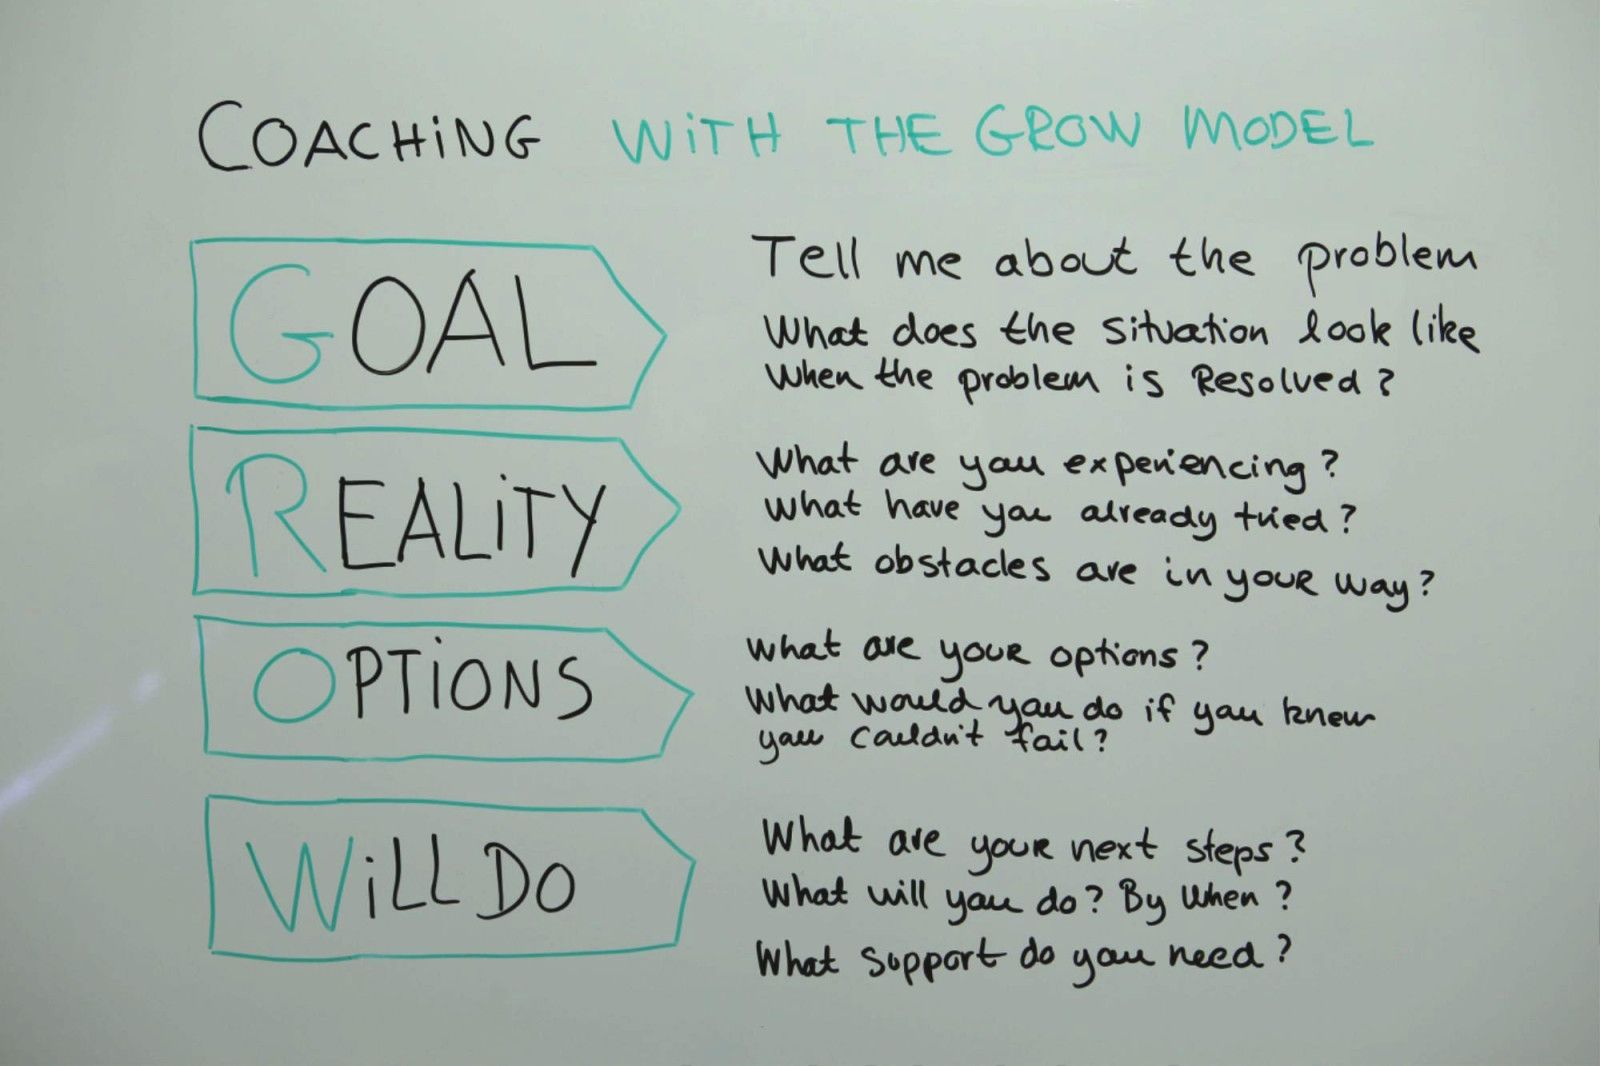 Coaching With The Grow Model